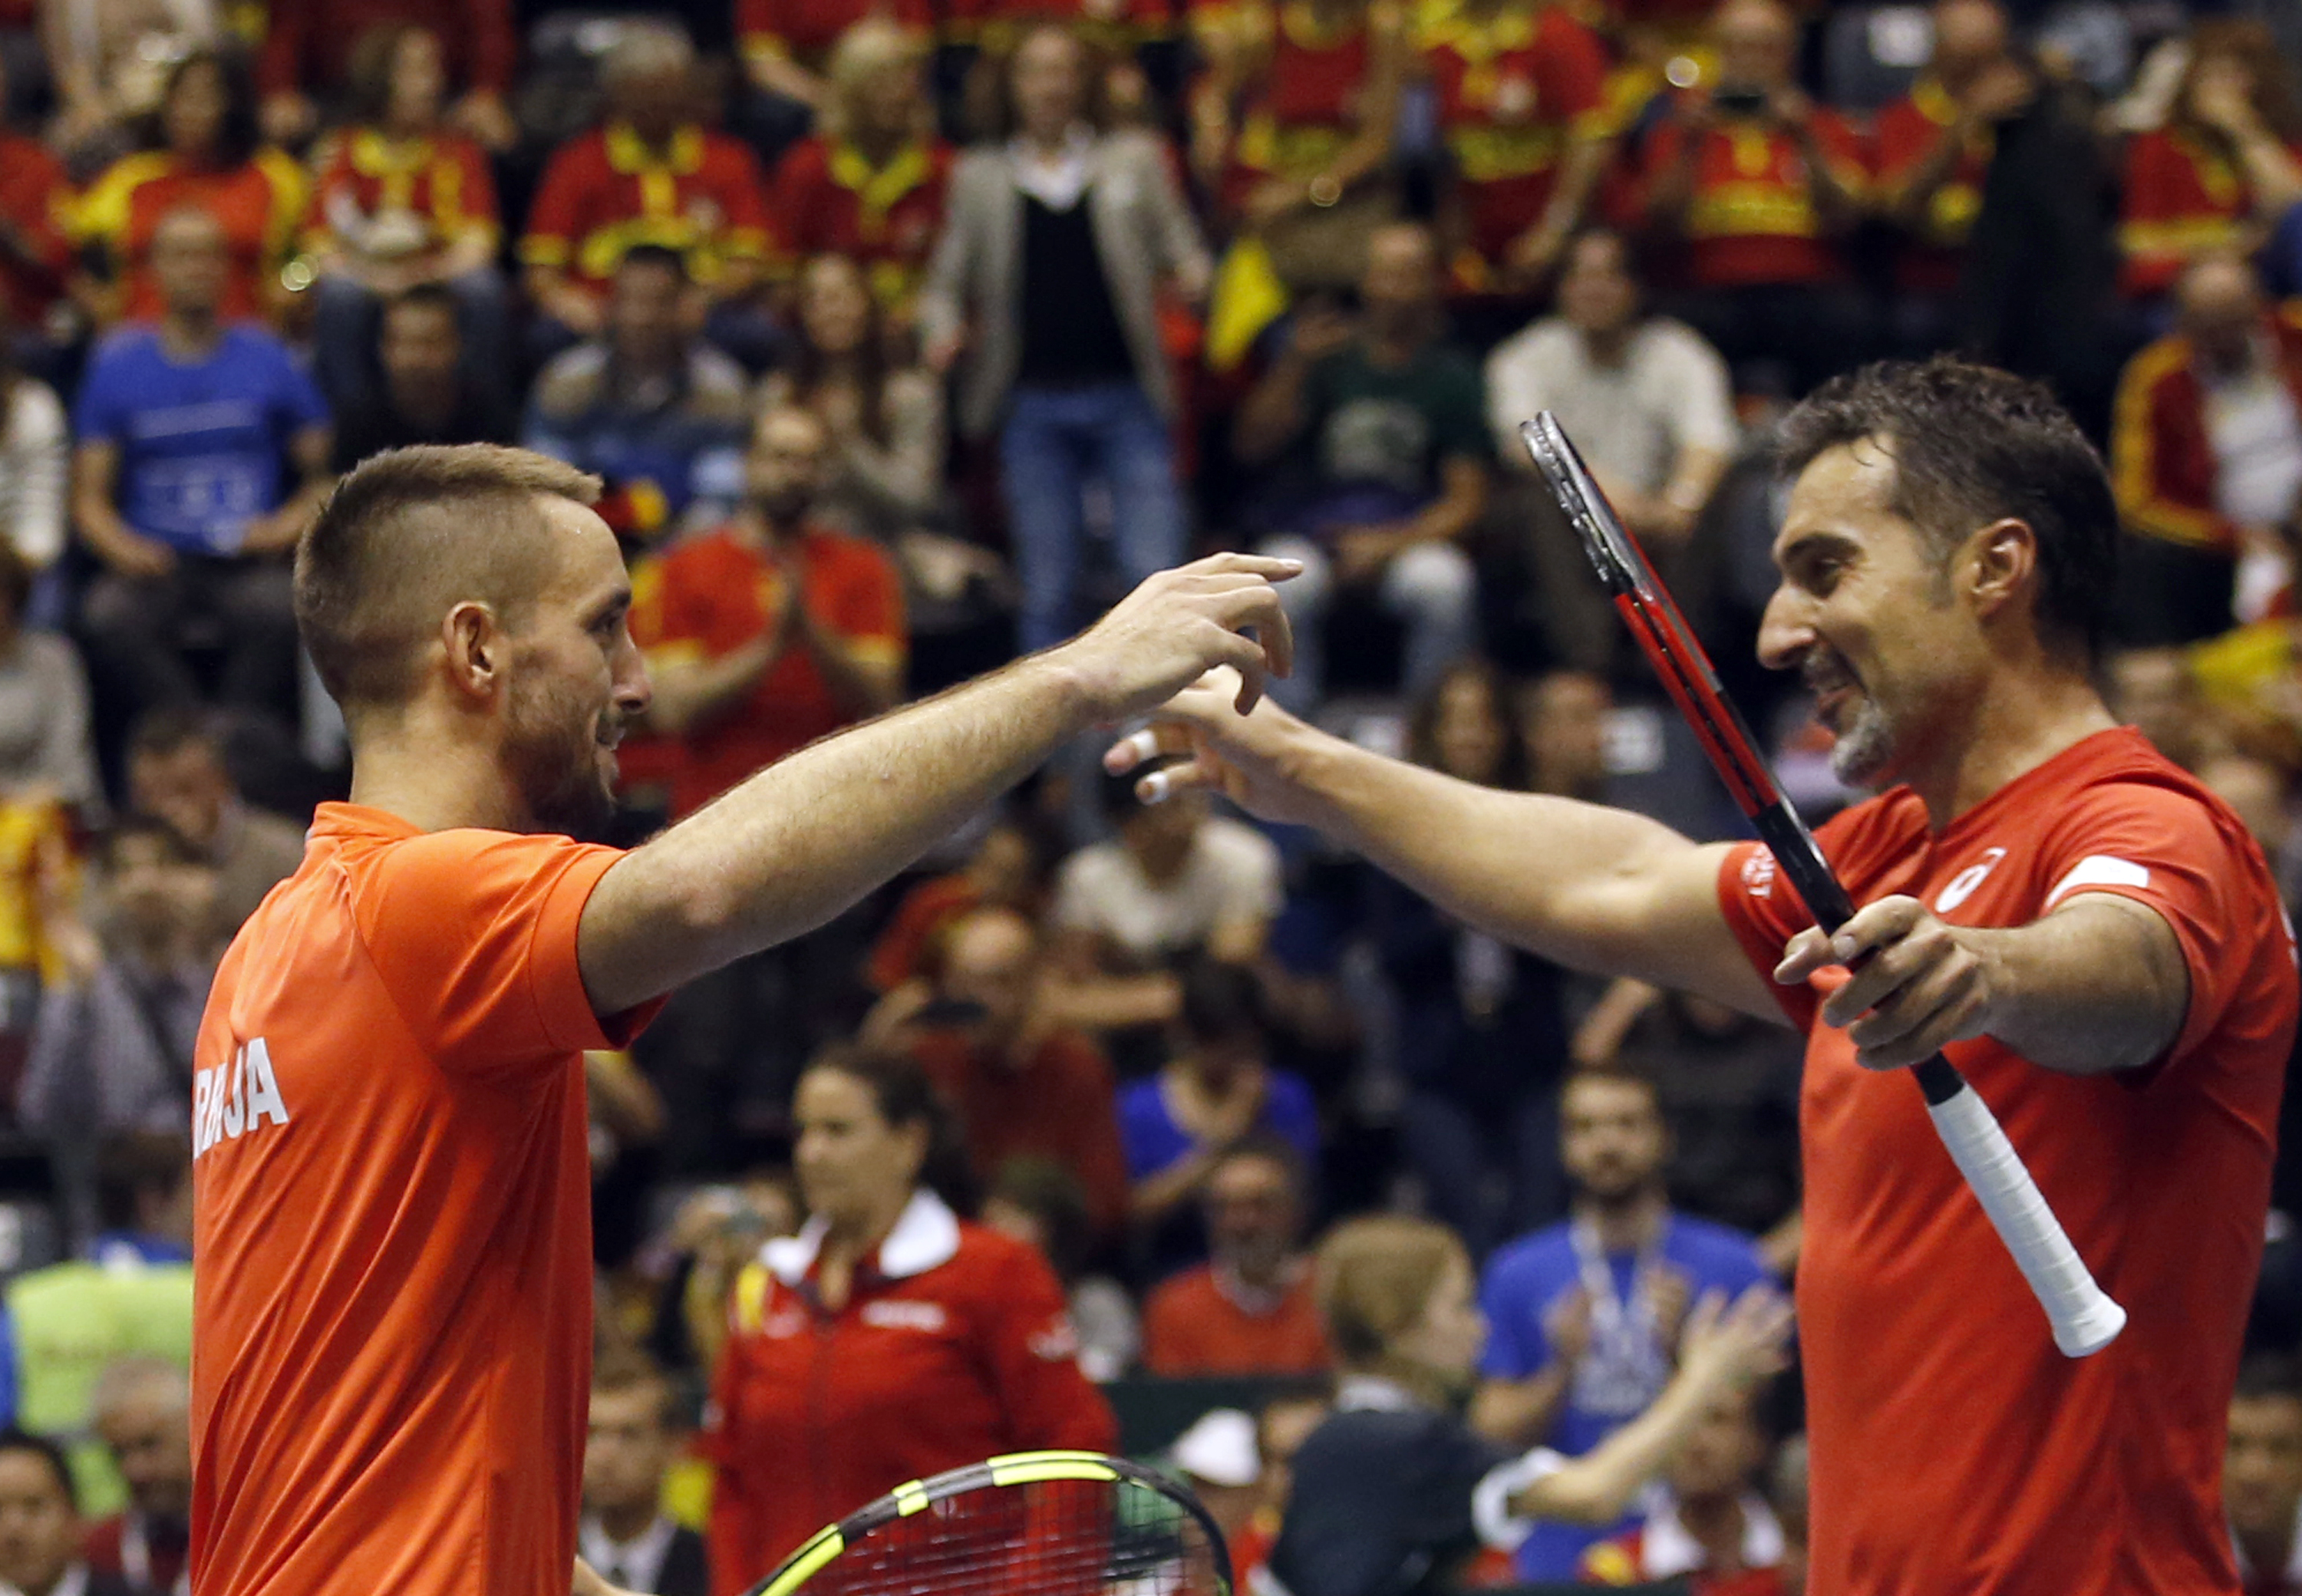 Serbia's Nenad Zimonjic, right, and his partner Viktor Troicki celebrate after winning their Davis Cup quarterfinal tennis doubles match against Spain's Pablo Carreno Busta and Marc Lopez, in Belgrade, Serbia, Saturday, April 8, 2017. (AP Photo/Darko Voji